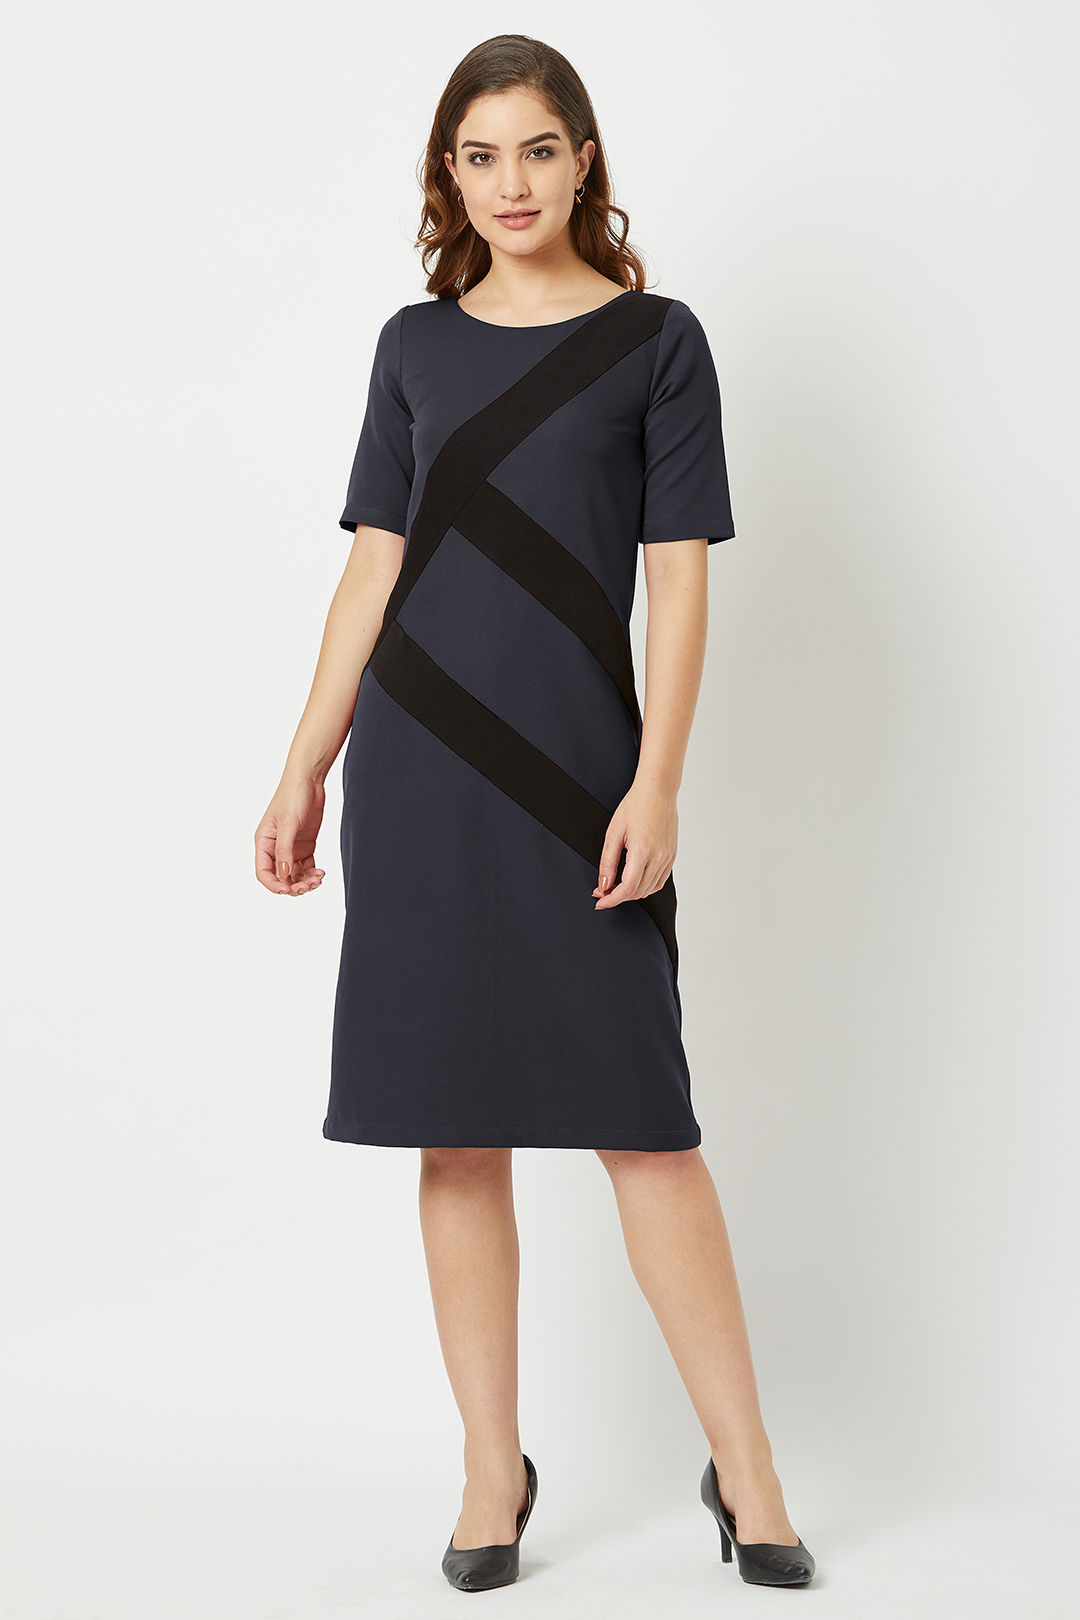 Dresses-Ethical-Grey-ColorBlockdress